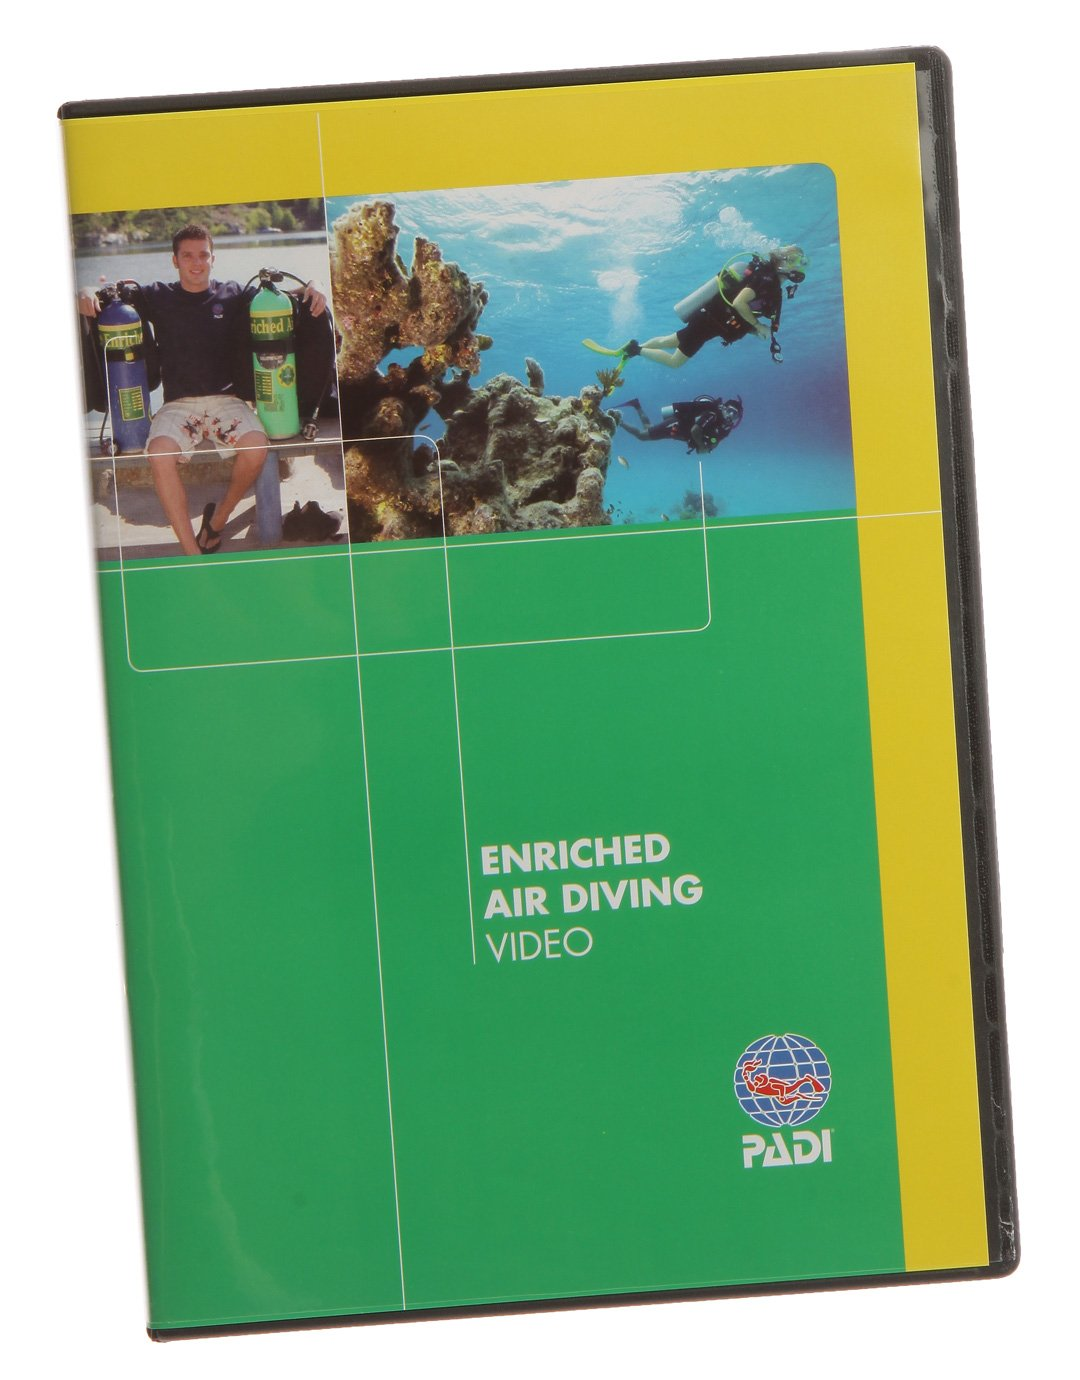 Image of PADI Enriched Air DVD